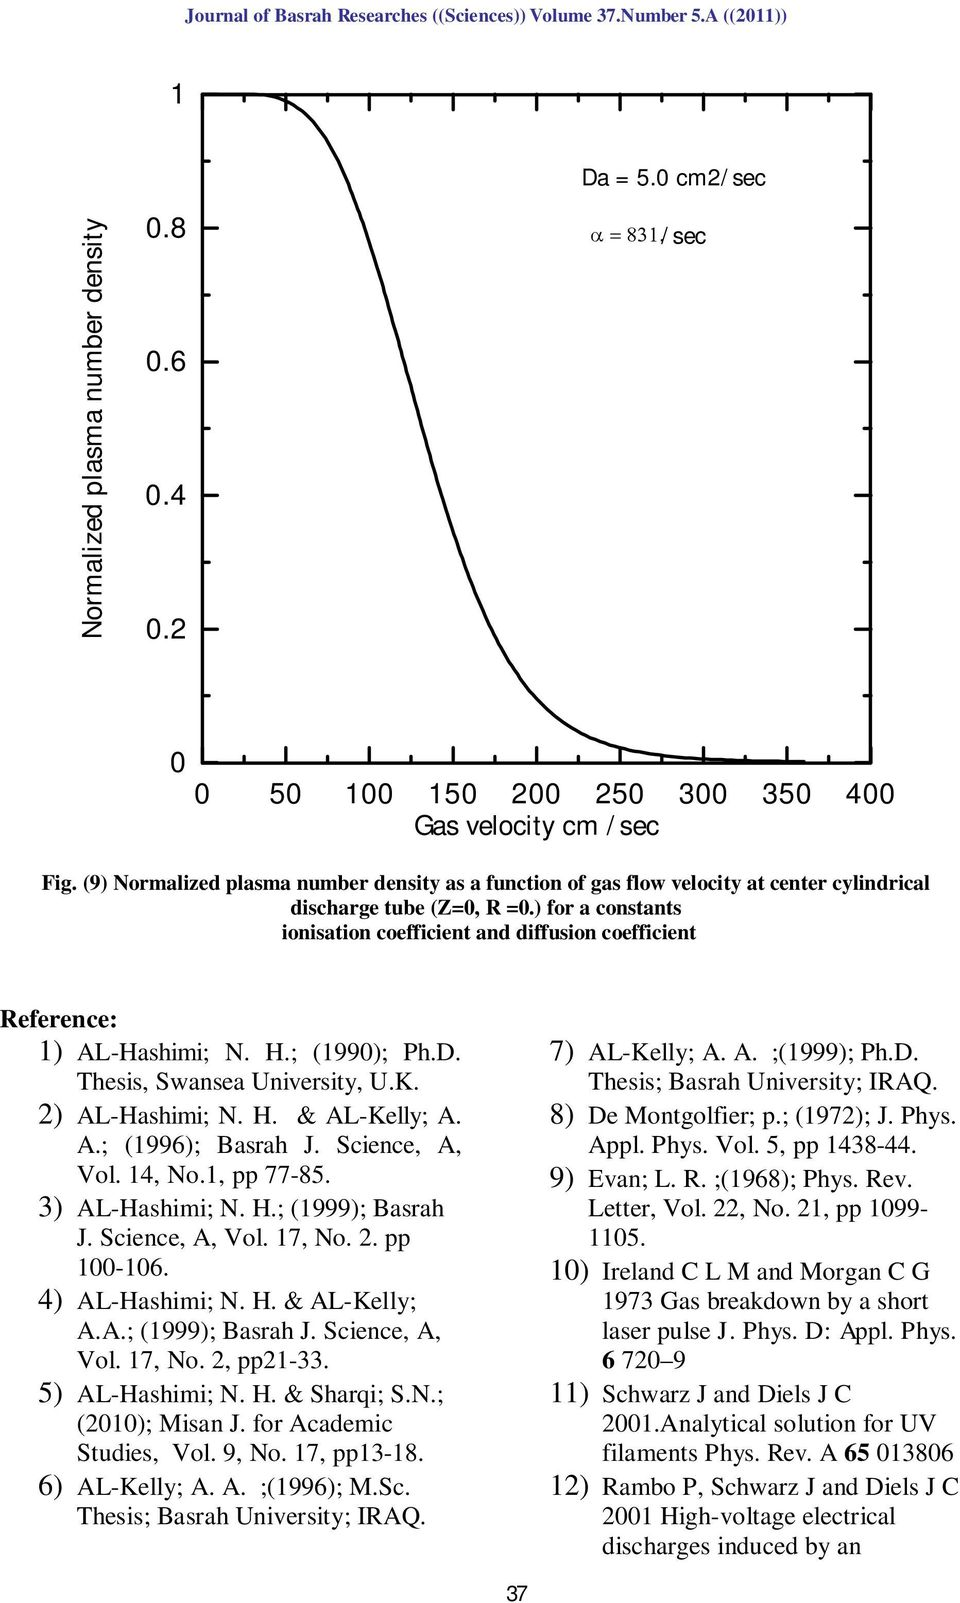 ) for a constants ionisation coefficient and diffusion coefficient Reference: 1) AL-Hashimi; N. H.; (1990); Ph.D. Thesis, Swansea University, U.K. 2) AL-Hashimi; N. H. & AL-Kelly; A. A.; (1996); Basrah J.